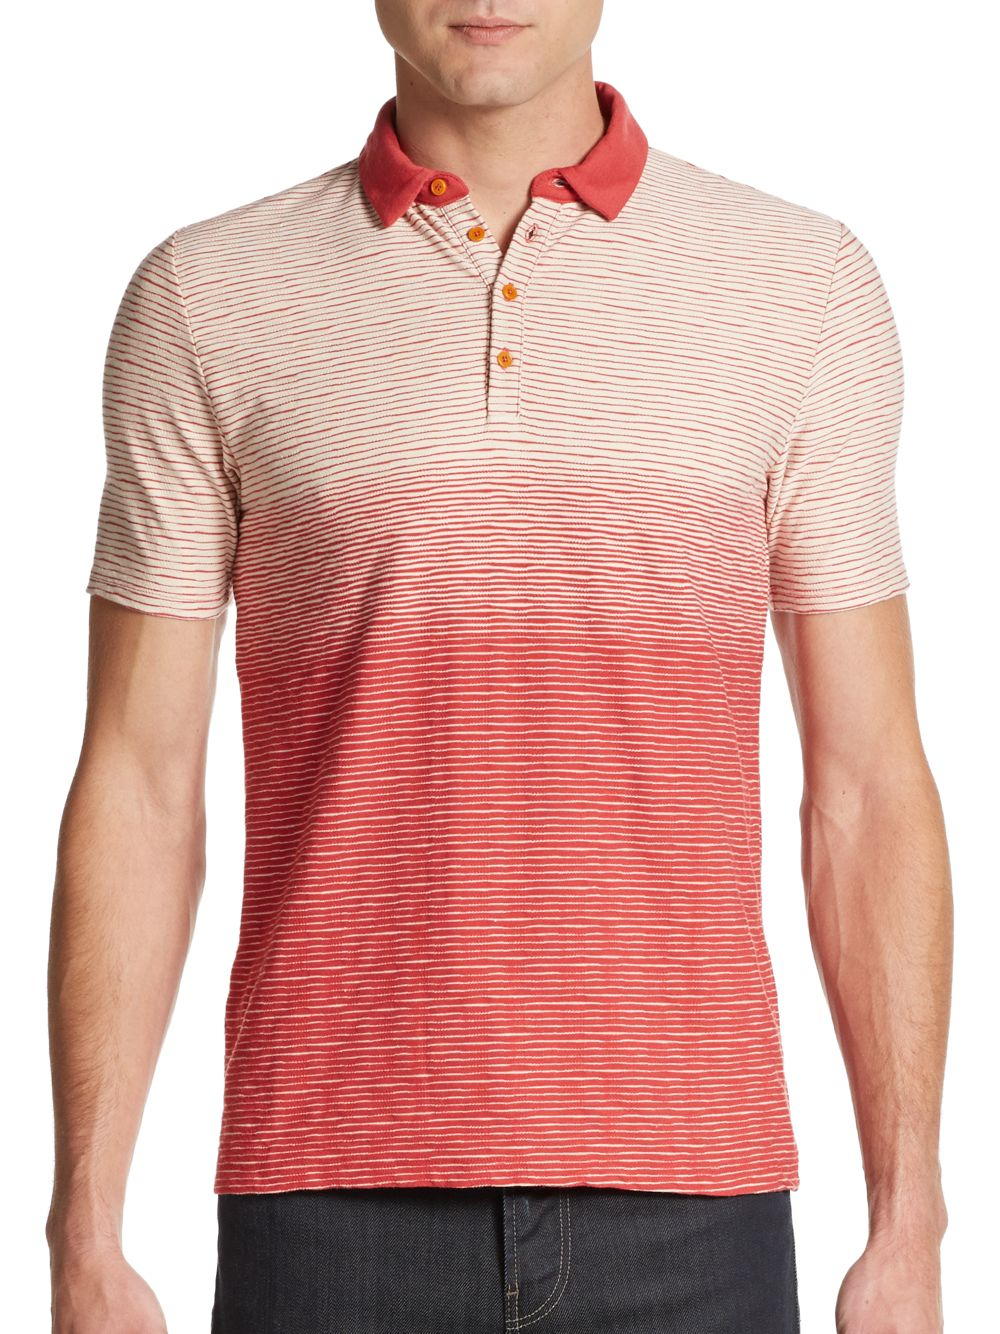 Ben Sherman Sand Formations Striped Polo Shirt In Orange